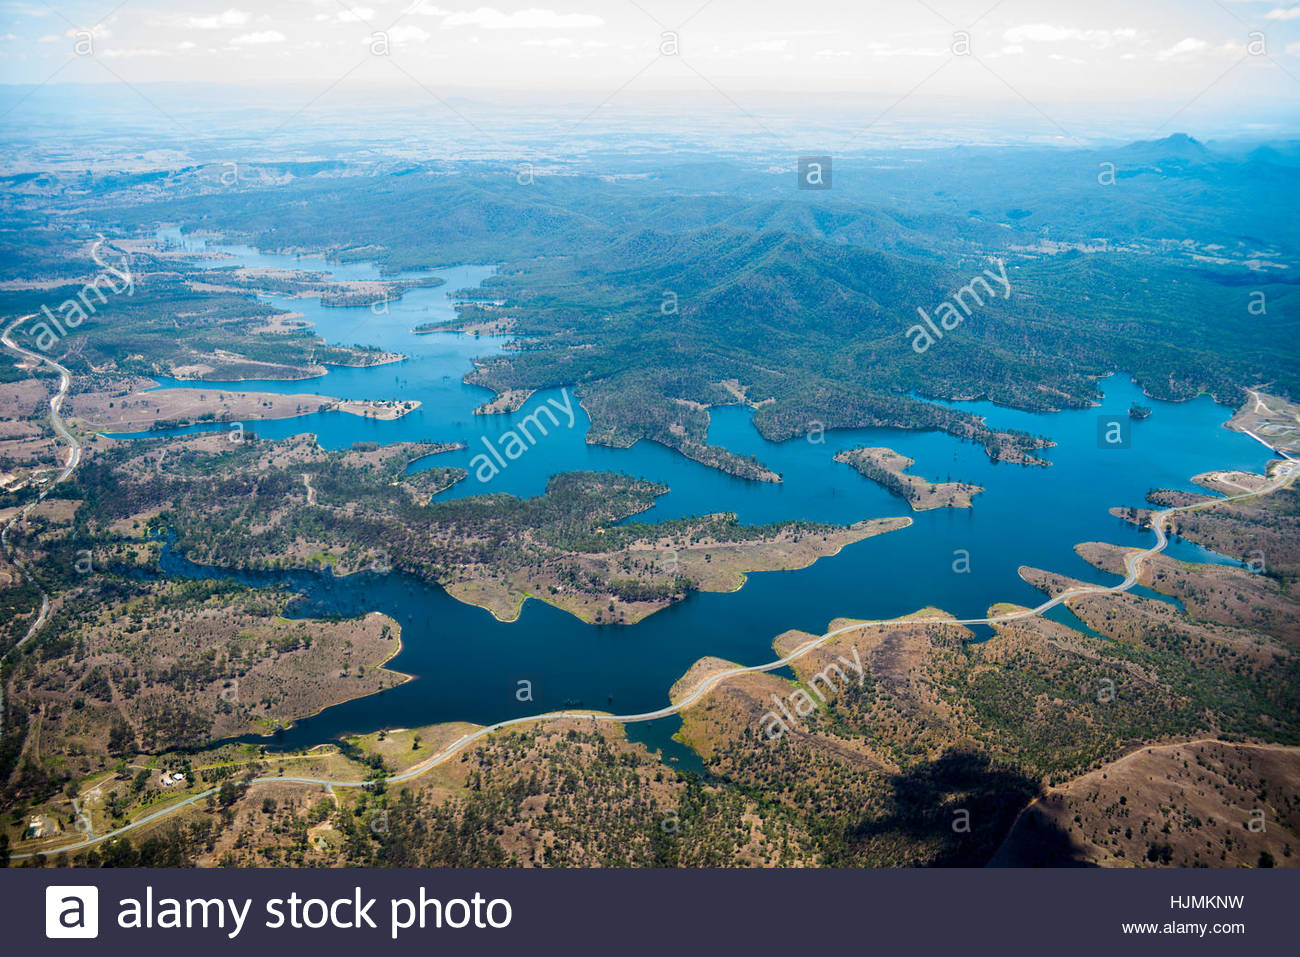 Lake Wyaralong from the sky, in the Queensland Hinterland - Stock Image